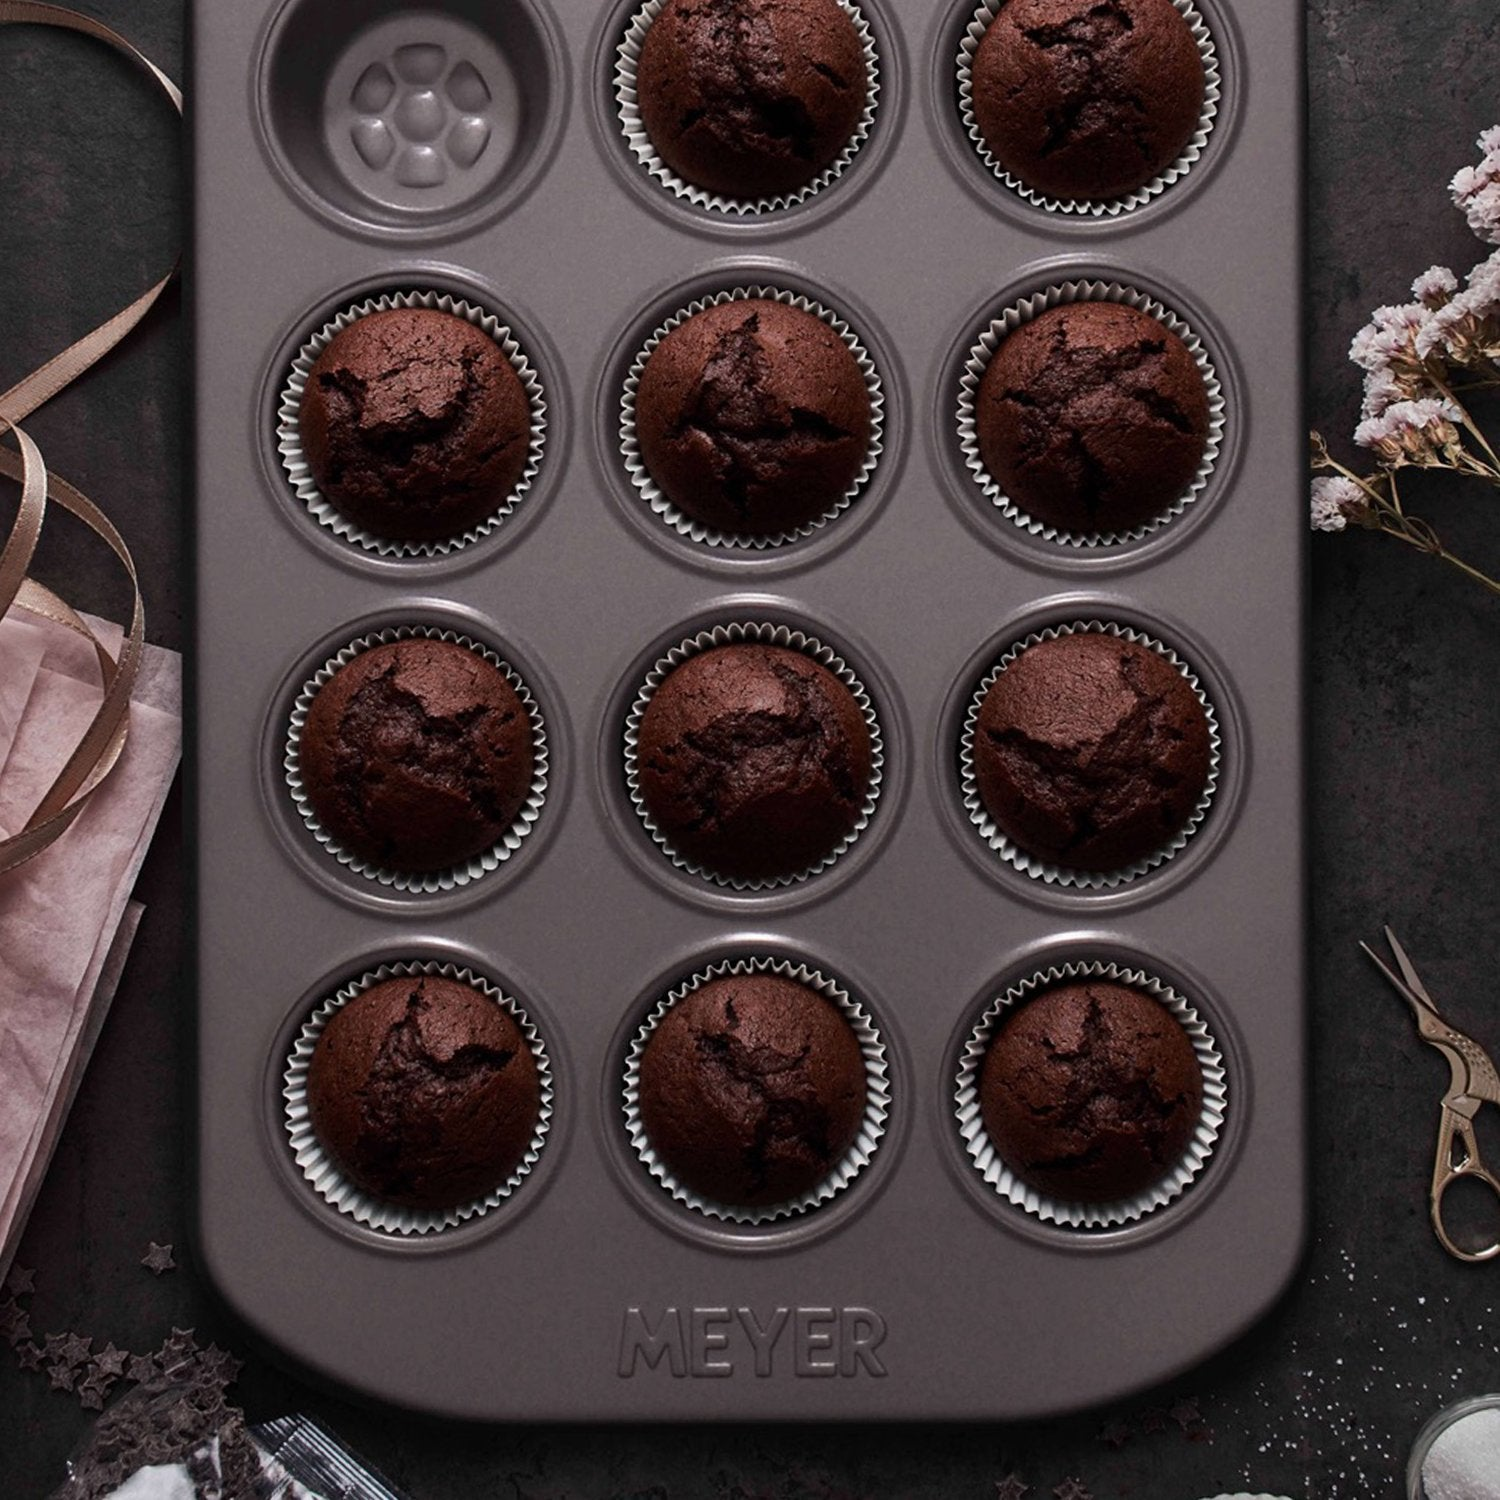 Meyer Bakemaster 2-Piece Bakeware Set - 12 Cup Mini Muffin Pan + 4Cup 2Tier Square Cake Pan - Pots and Pans